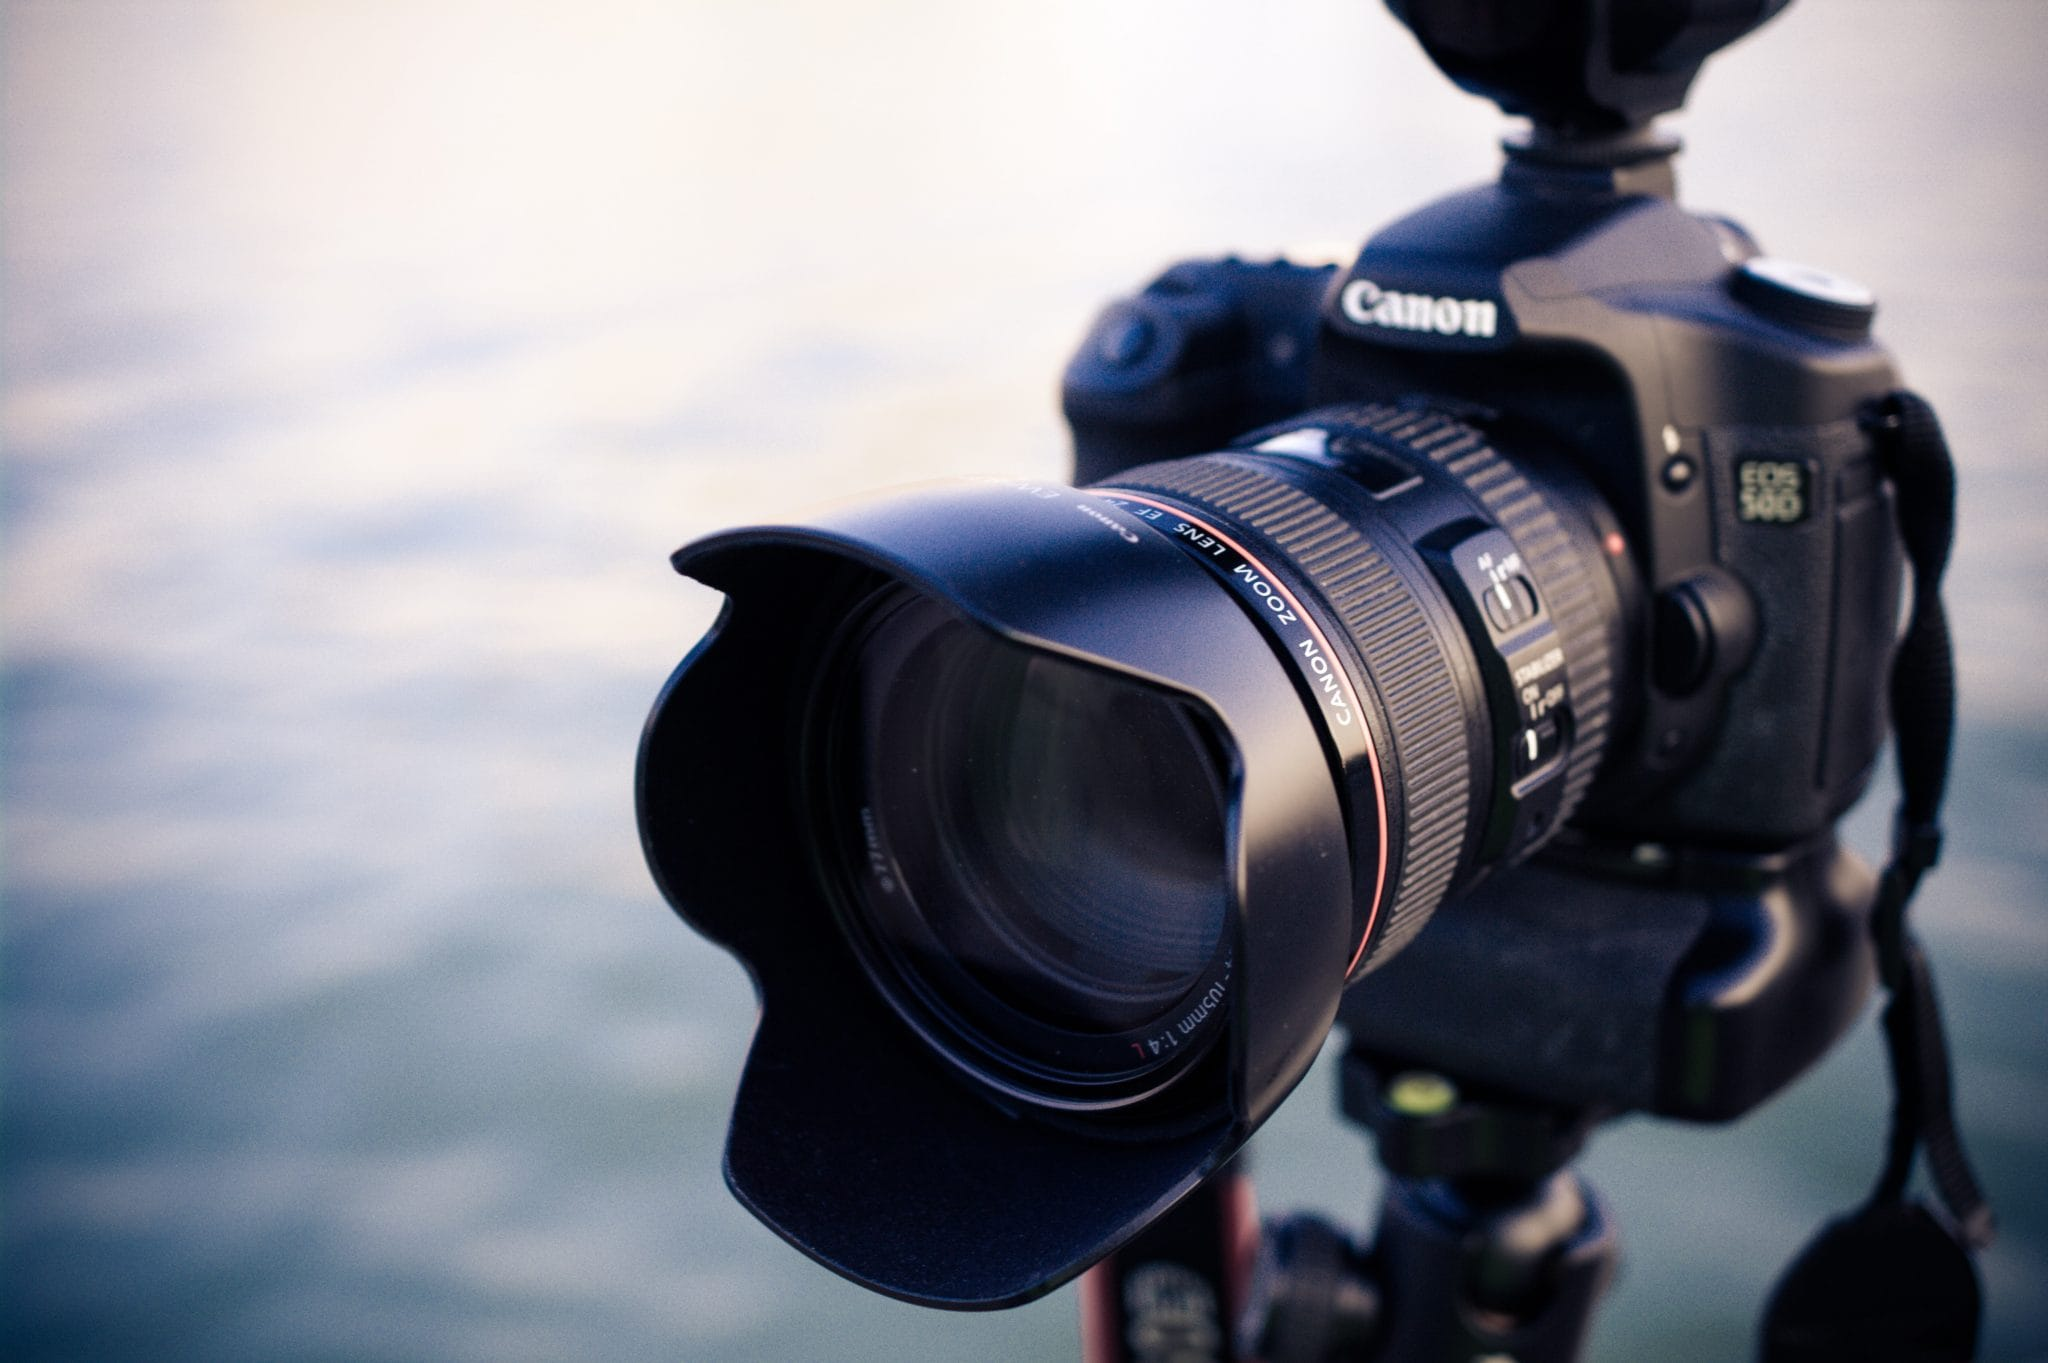 Close up photo of a Canon DSLR camera with extended lens in front of a body of water.